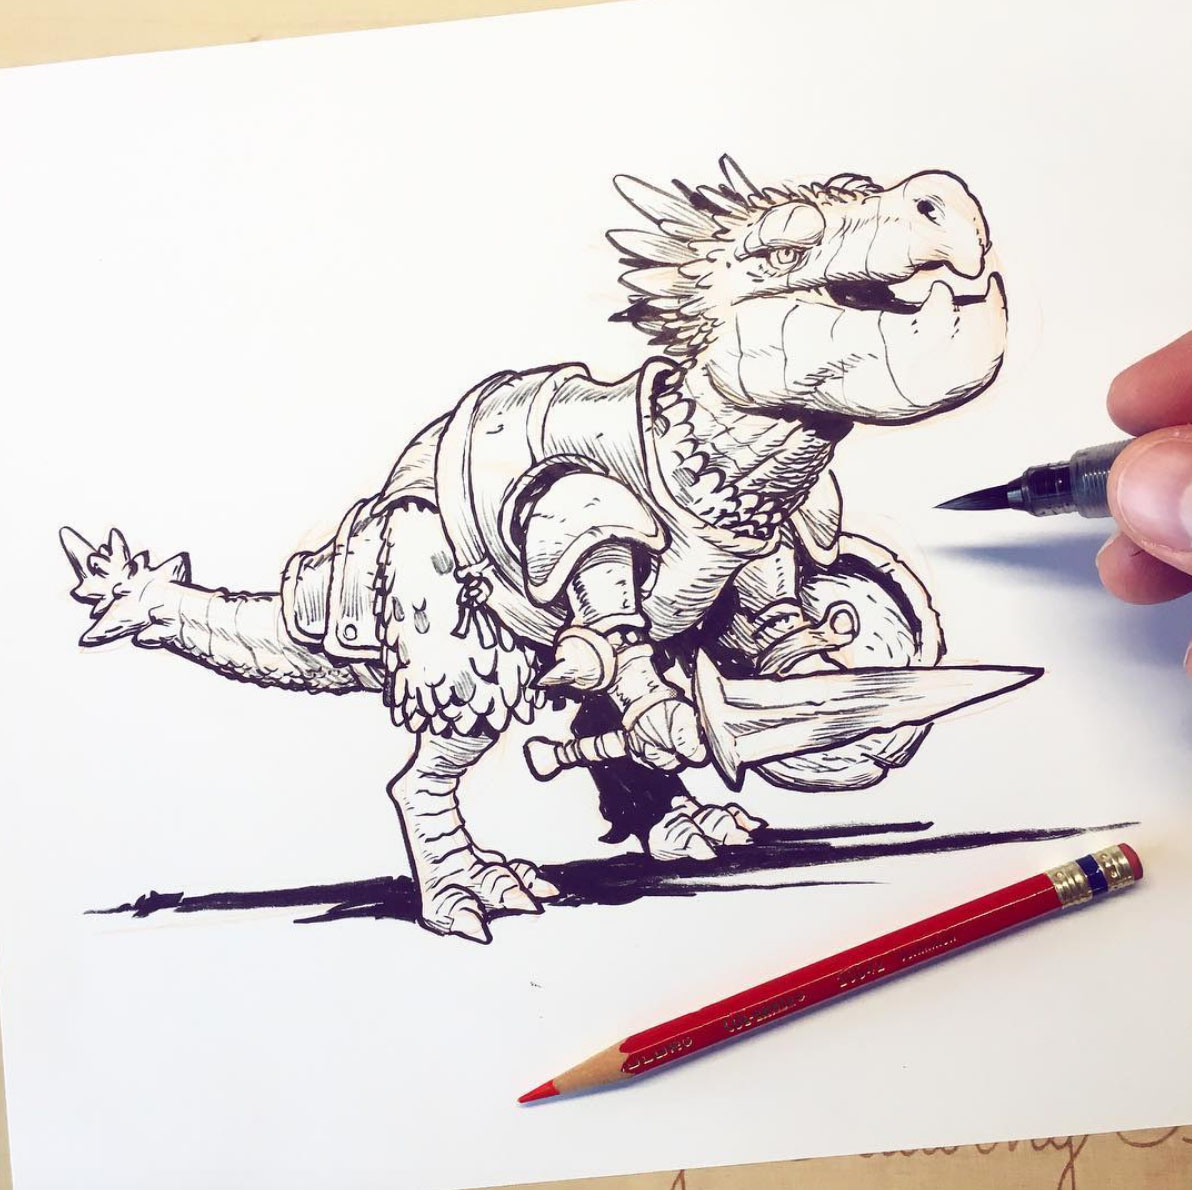 Watch Jake Parker ink this dino warrior in his brand new ink class!